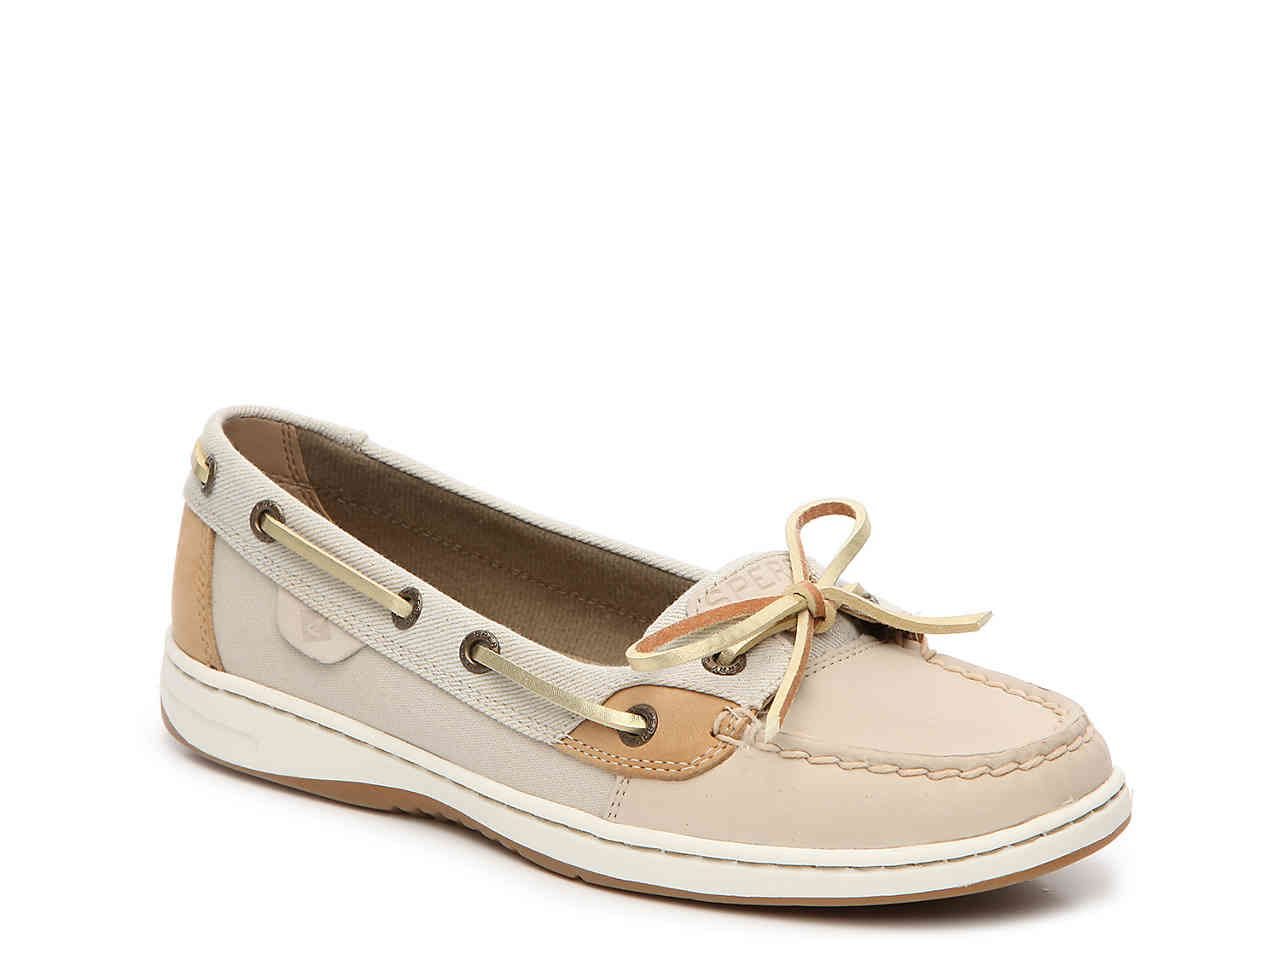 Sperry Angelfish Boat Shoe | Shoes